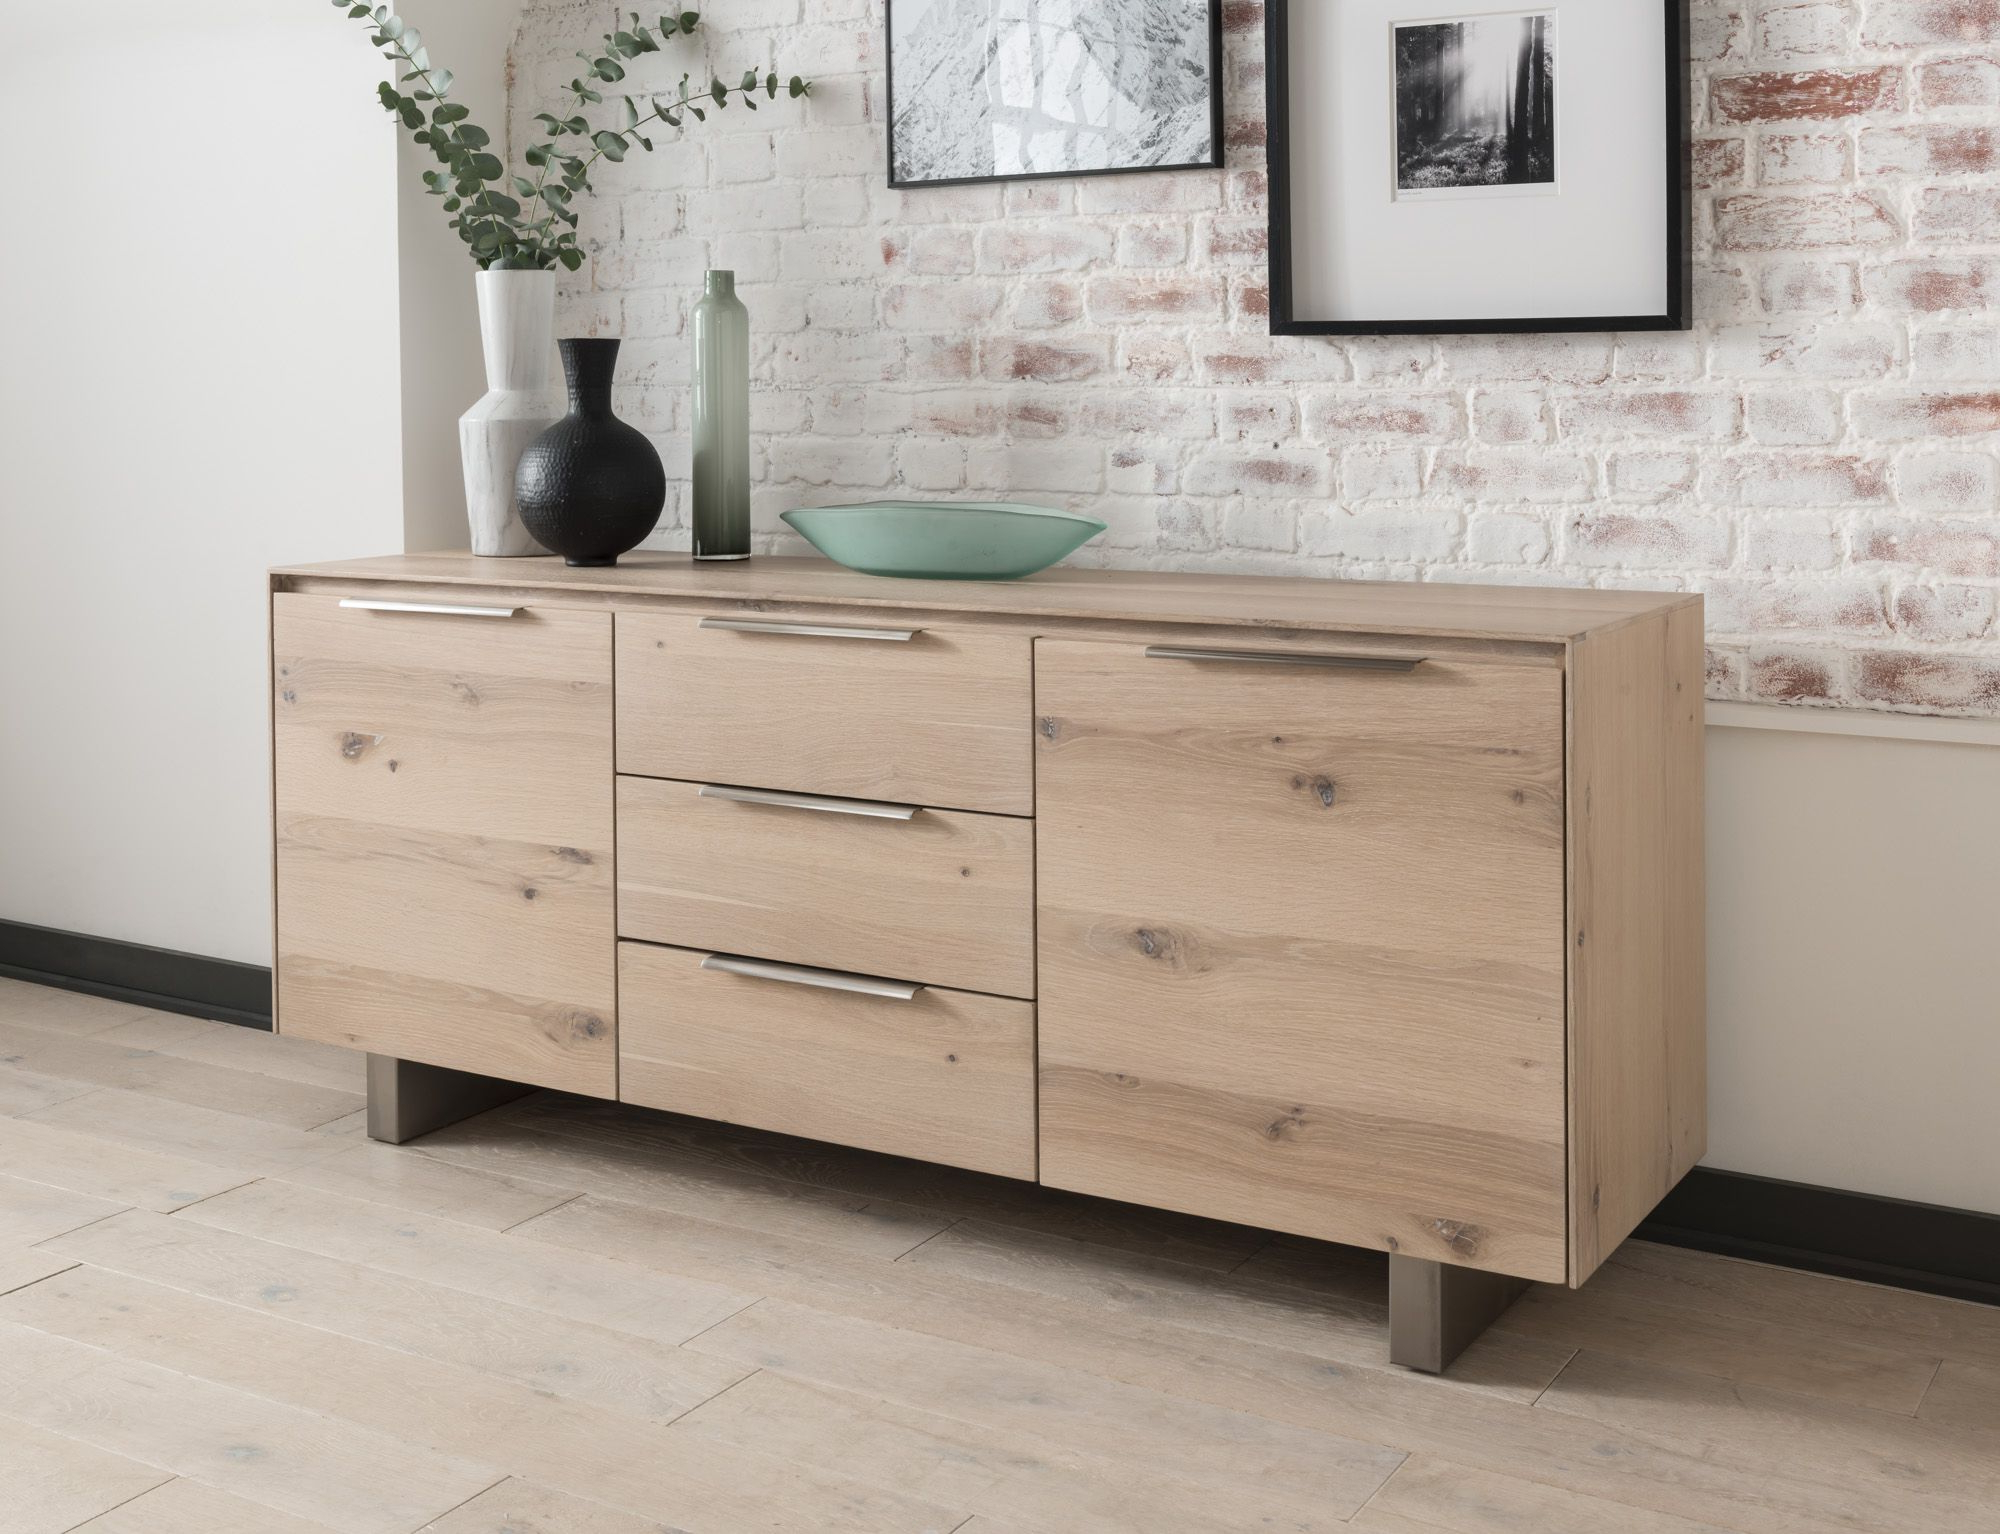 2 Door White Wash Sideboards Intended For Trendy Capua White Washed Oak Sideboard 18Vd (View 15 of 20)